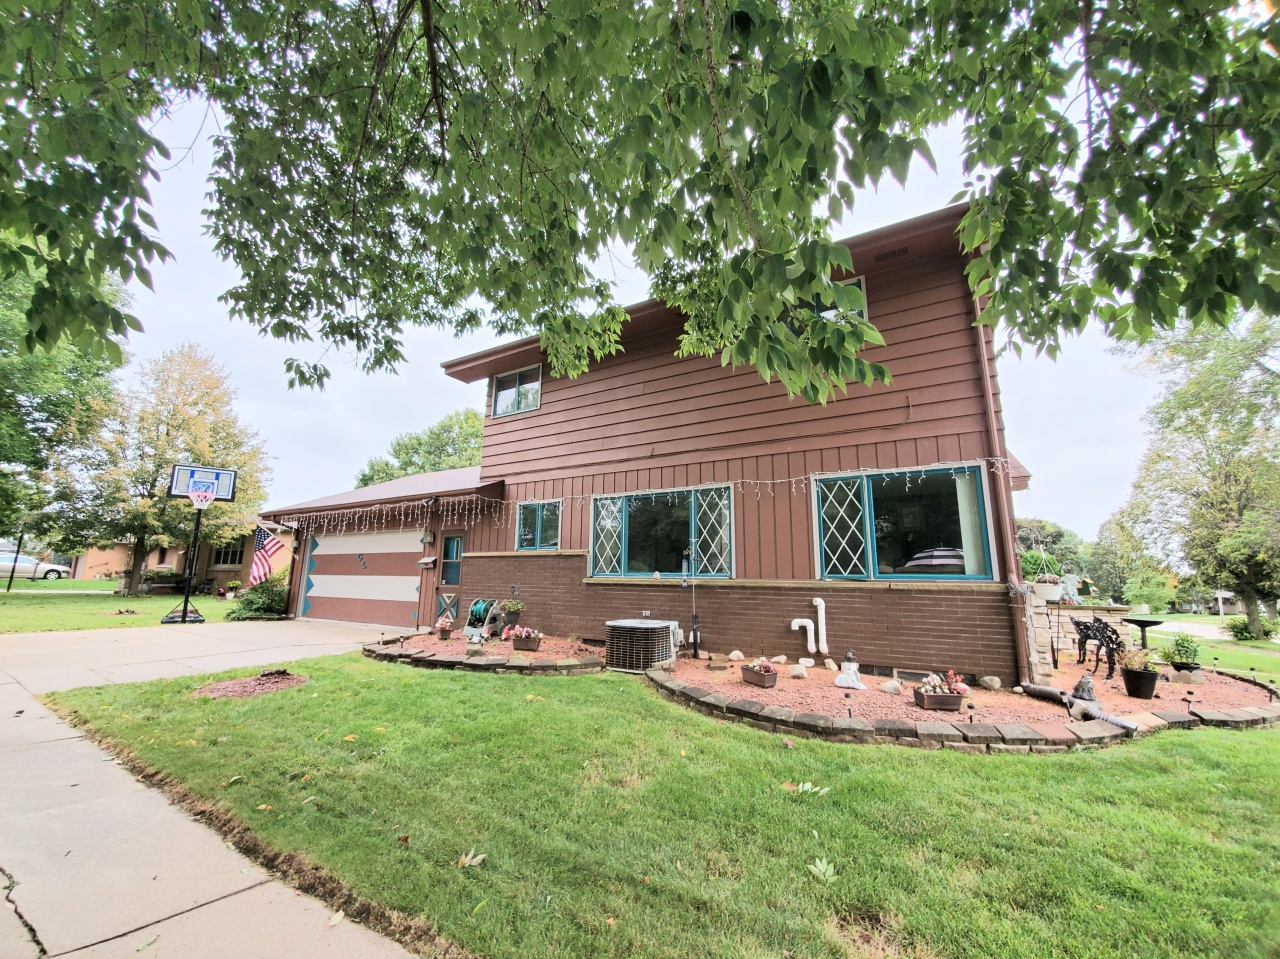 1703 25th St, Sheboygan, Wisconsin 53081, 3 Bedrooms Bedrooms, 8 Rooms Rooms,2 BathroomsBathrooms,Single-family,For Sale,25th St,1709042